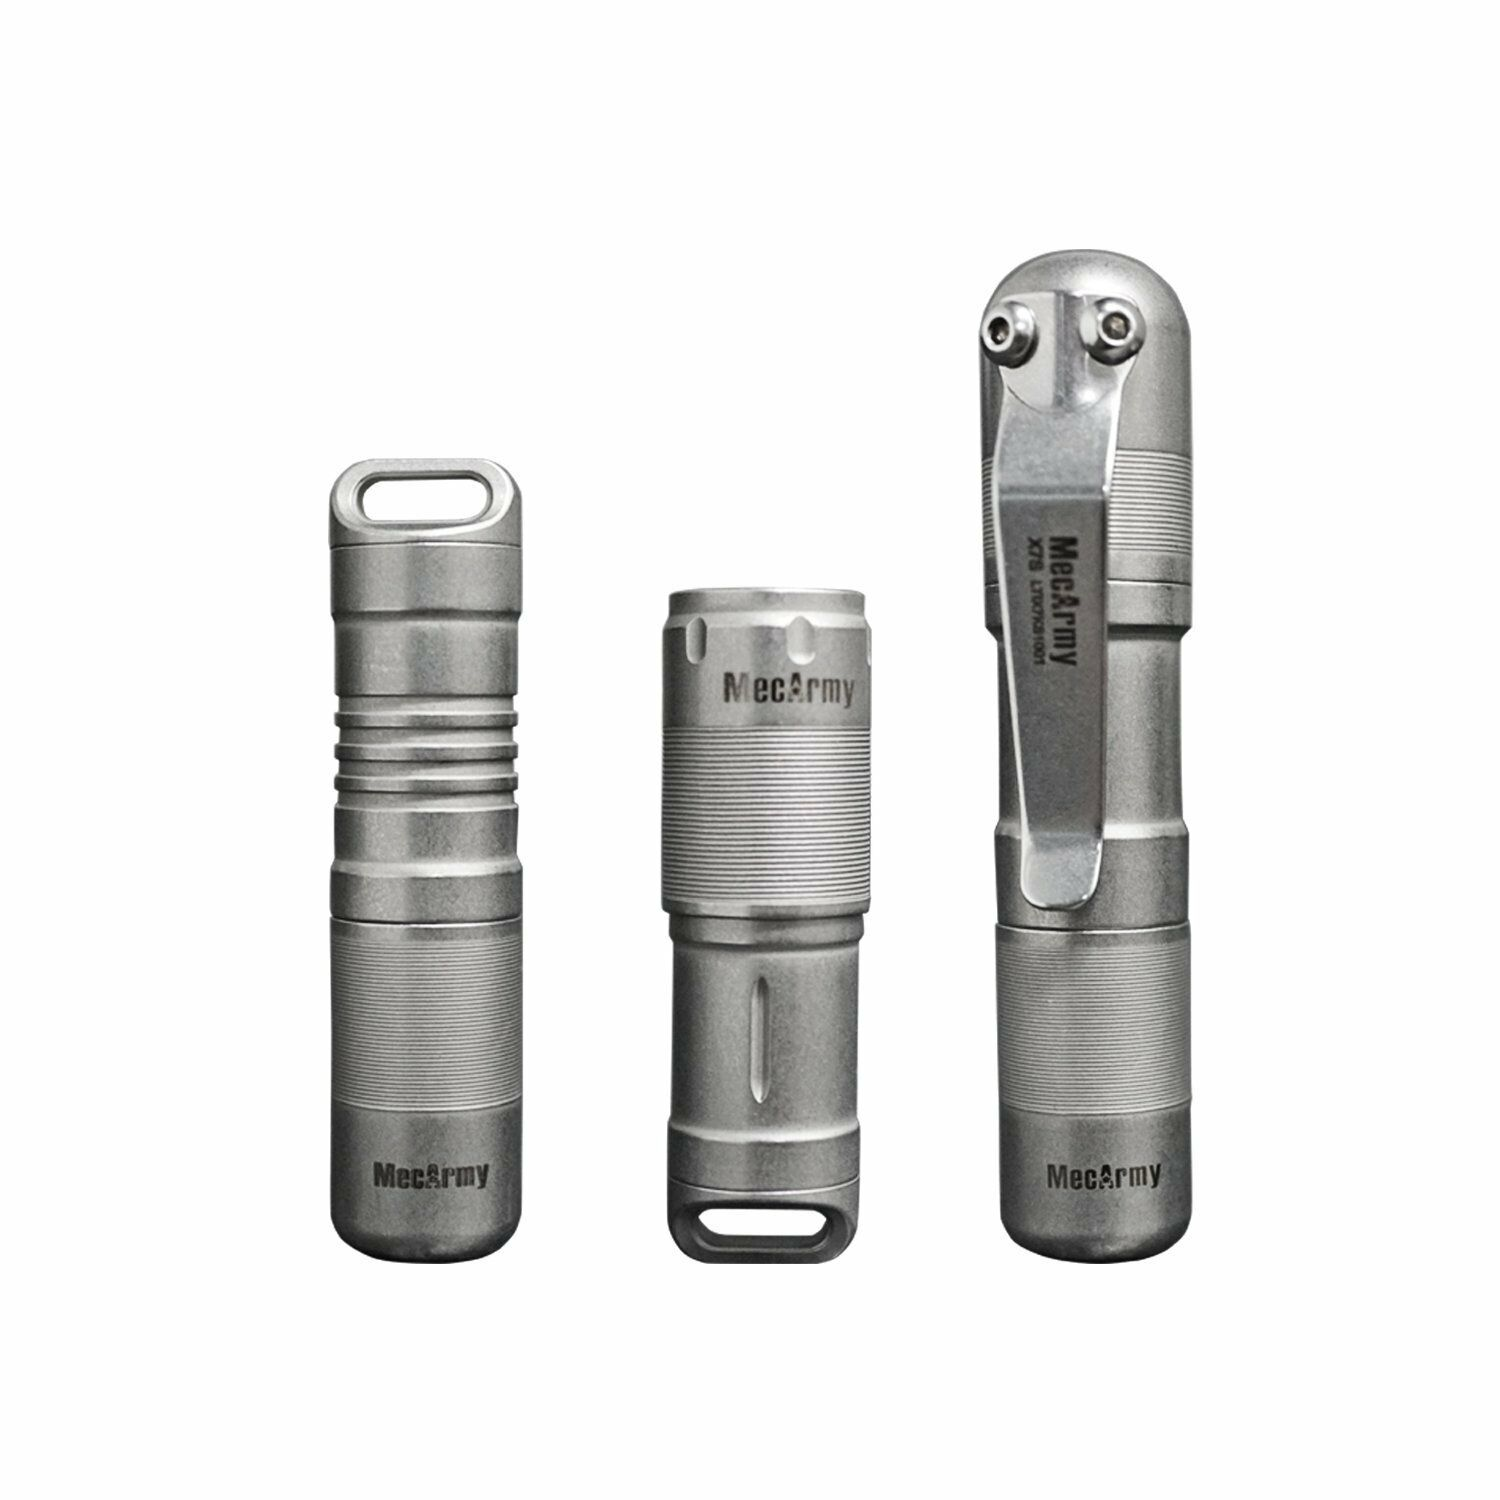 X7S Rechargeable Penlight+Pill Capsule+Lighters All-in-one Kit,MeCarmy Stonewash   credit guarantee